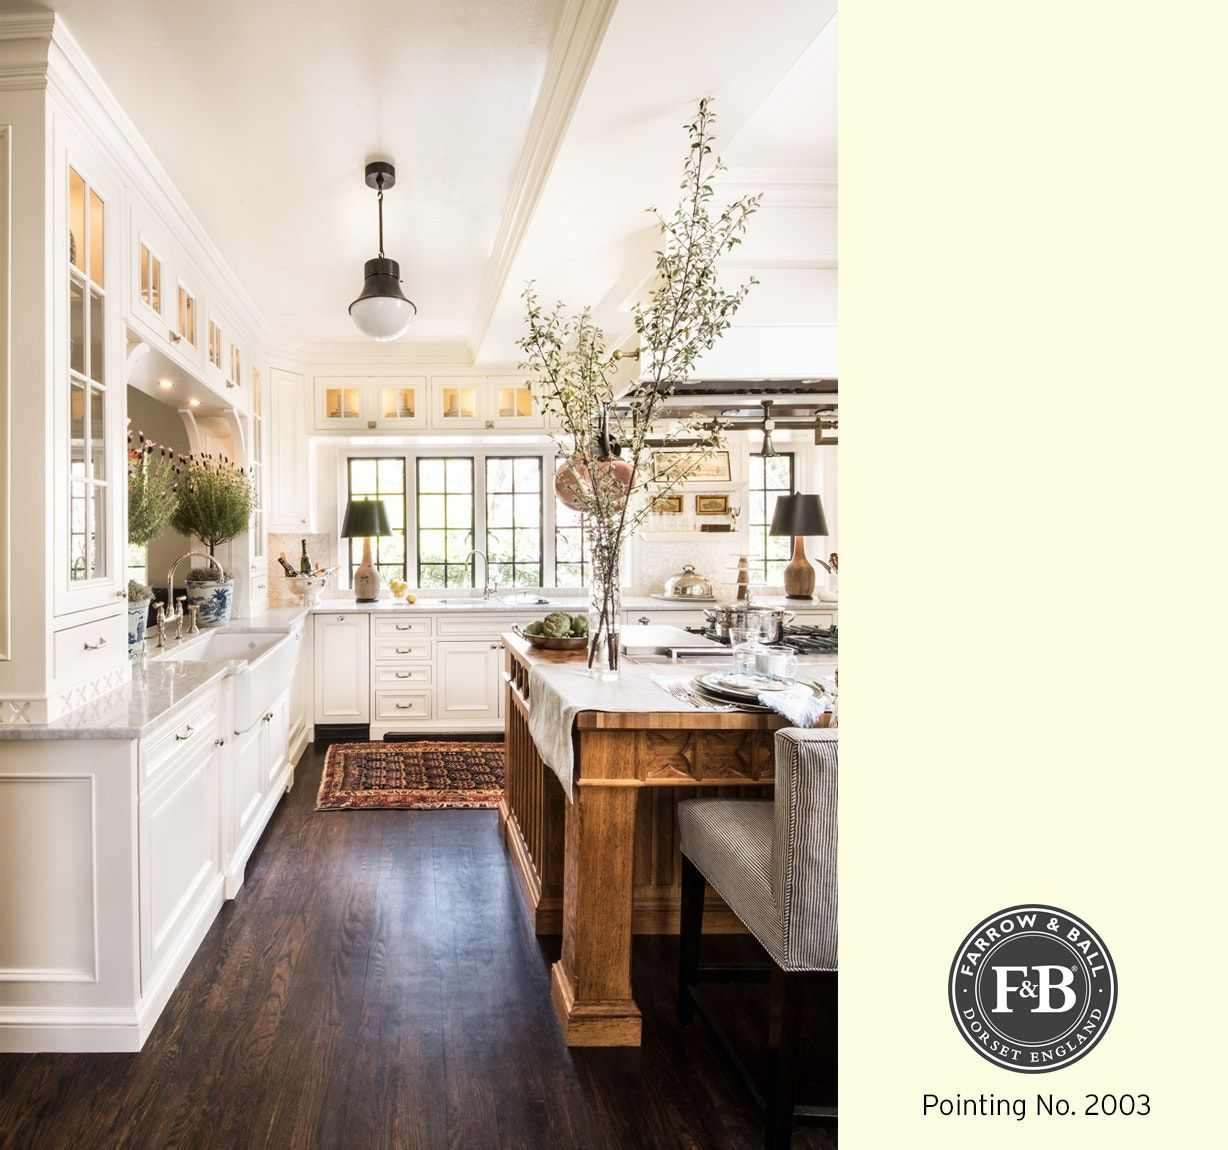 17 Color Tips from Designers for Transforming a Kitchen | Kitchens ...